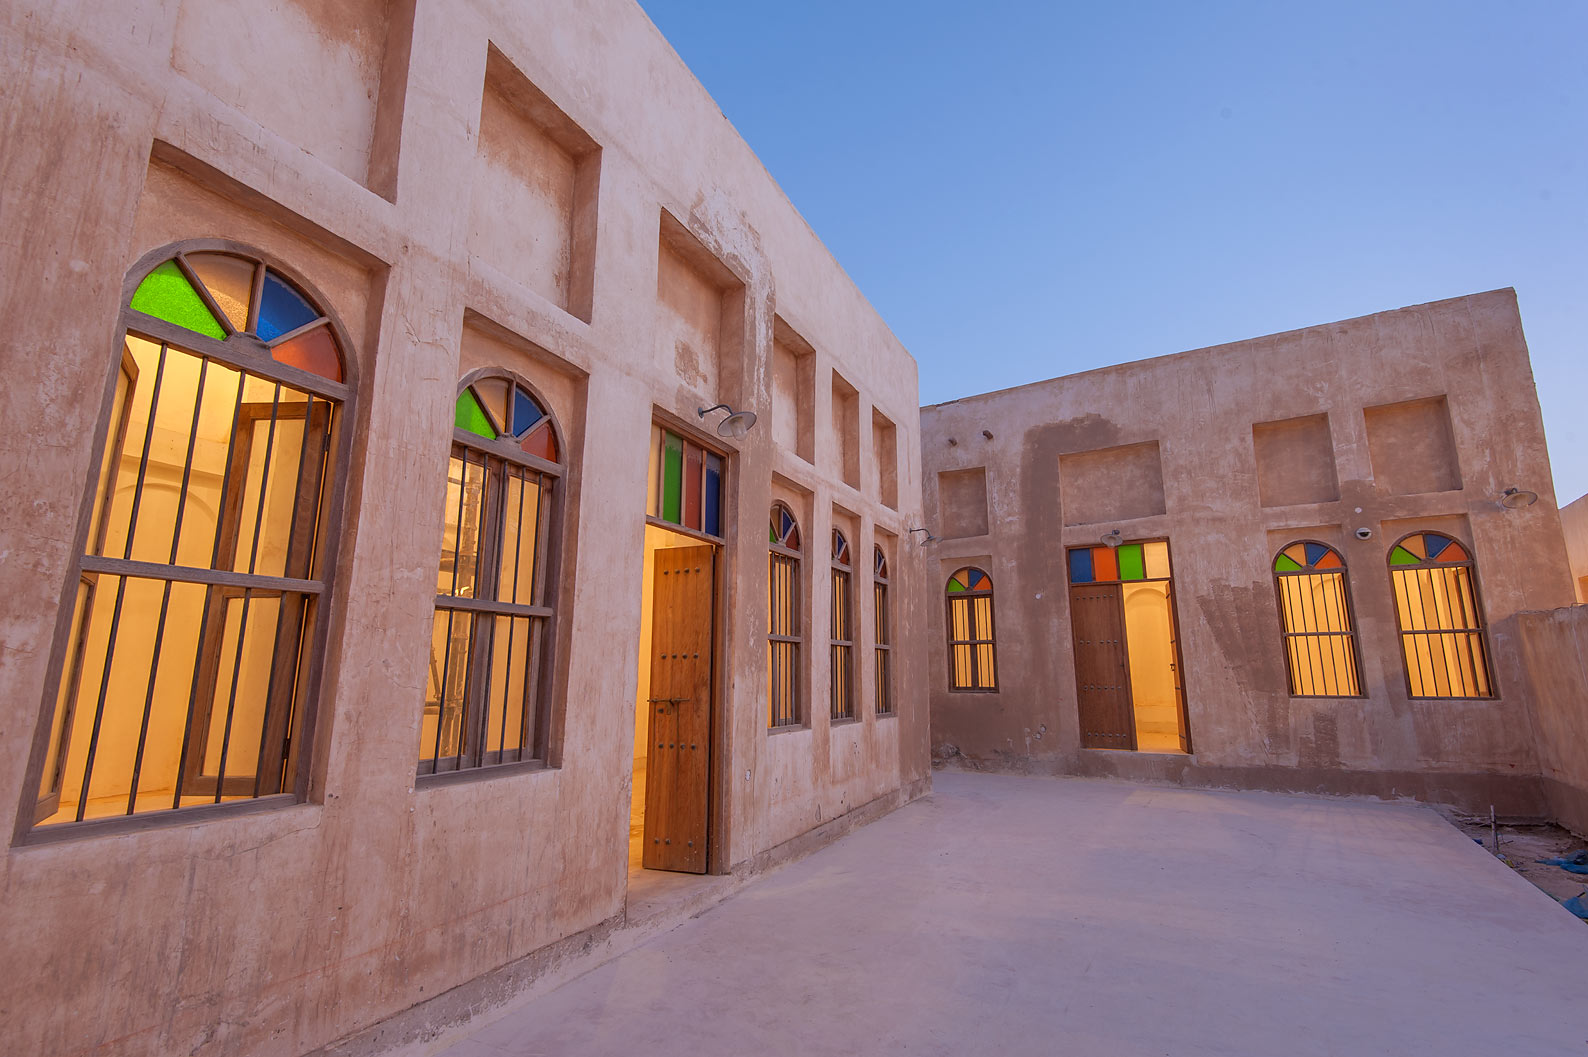 Traditional house in Al Wakra Heritage Village (Souq Waqif in Al Wakrah). Qatar